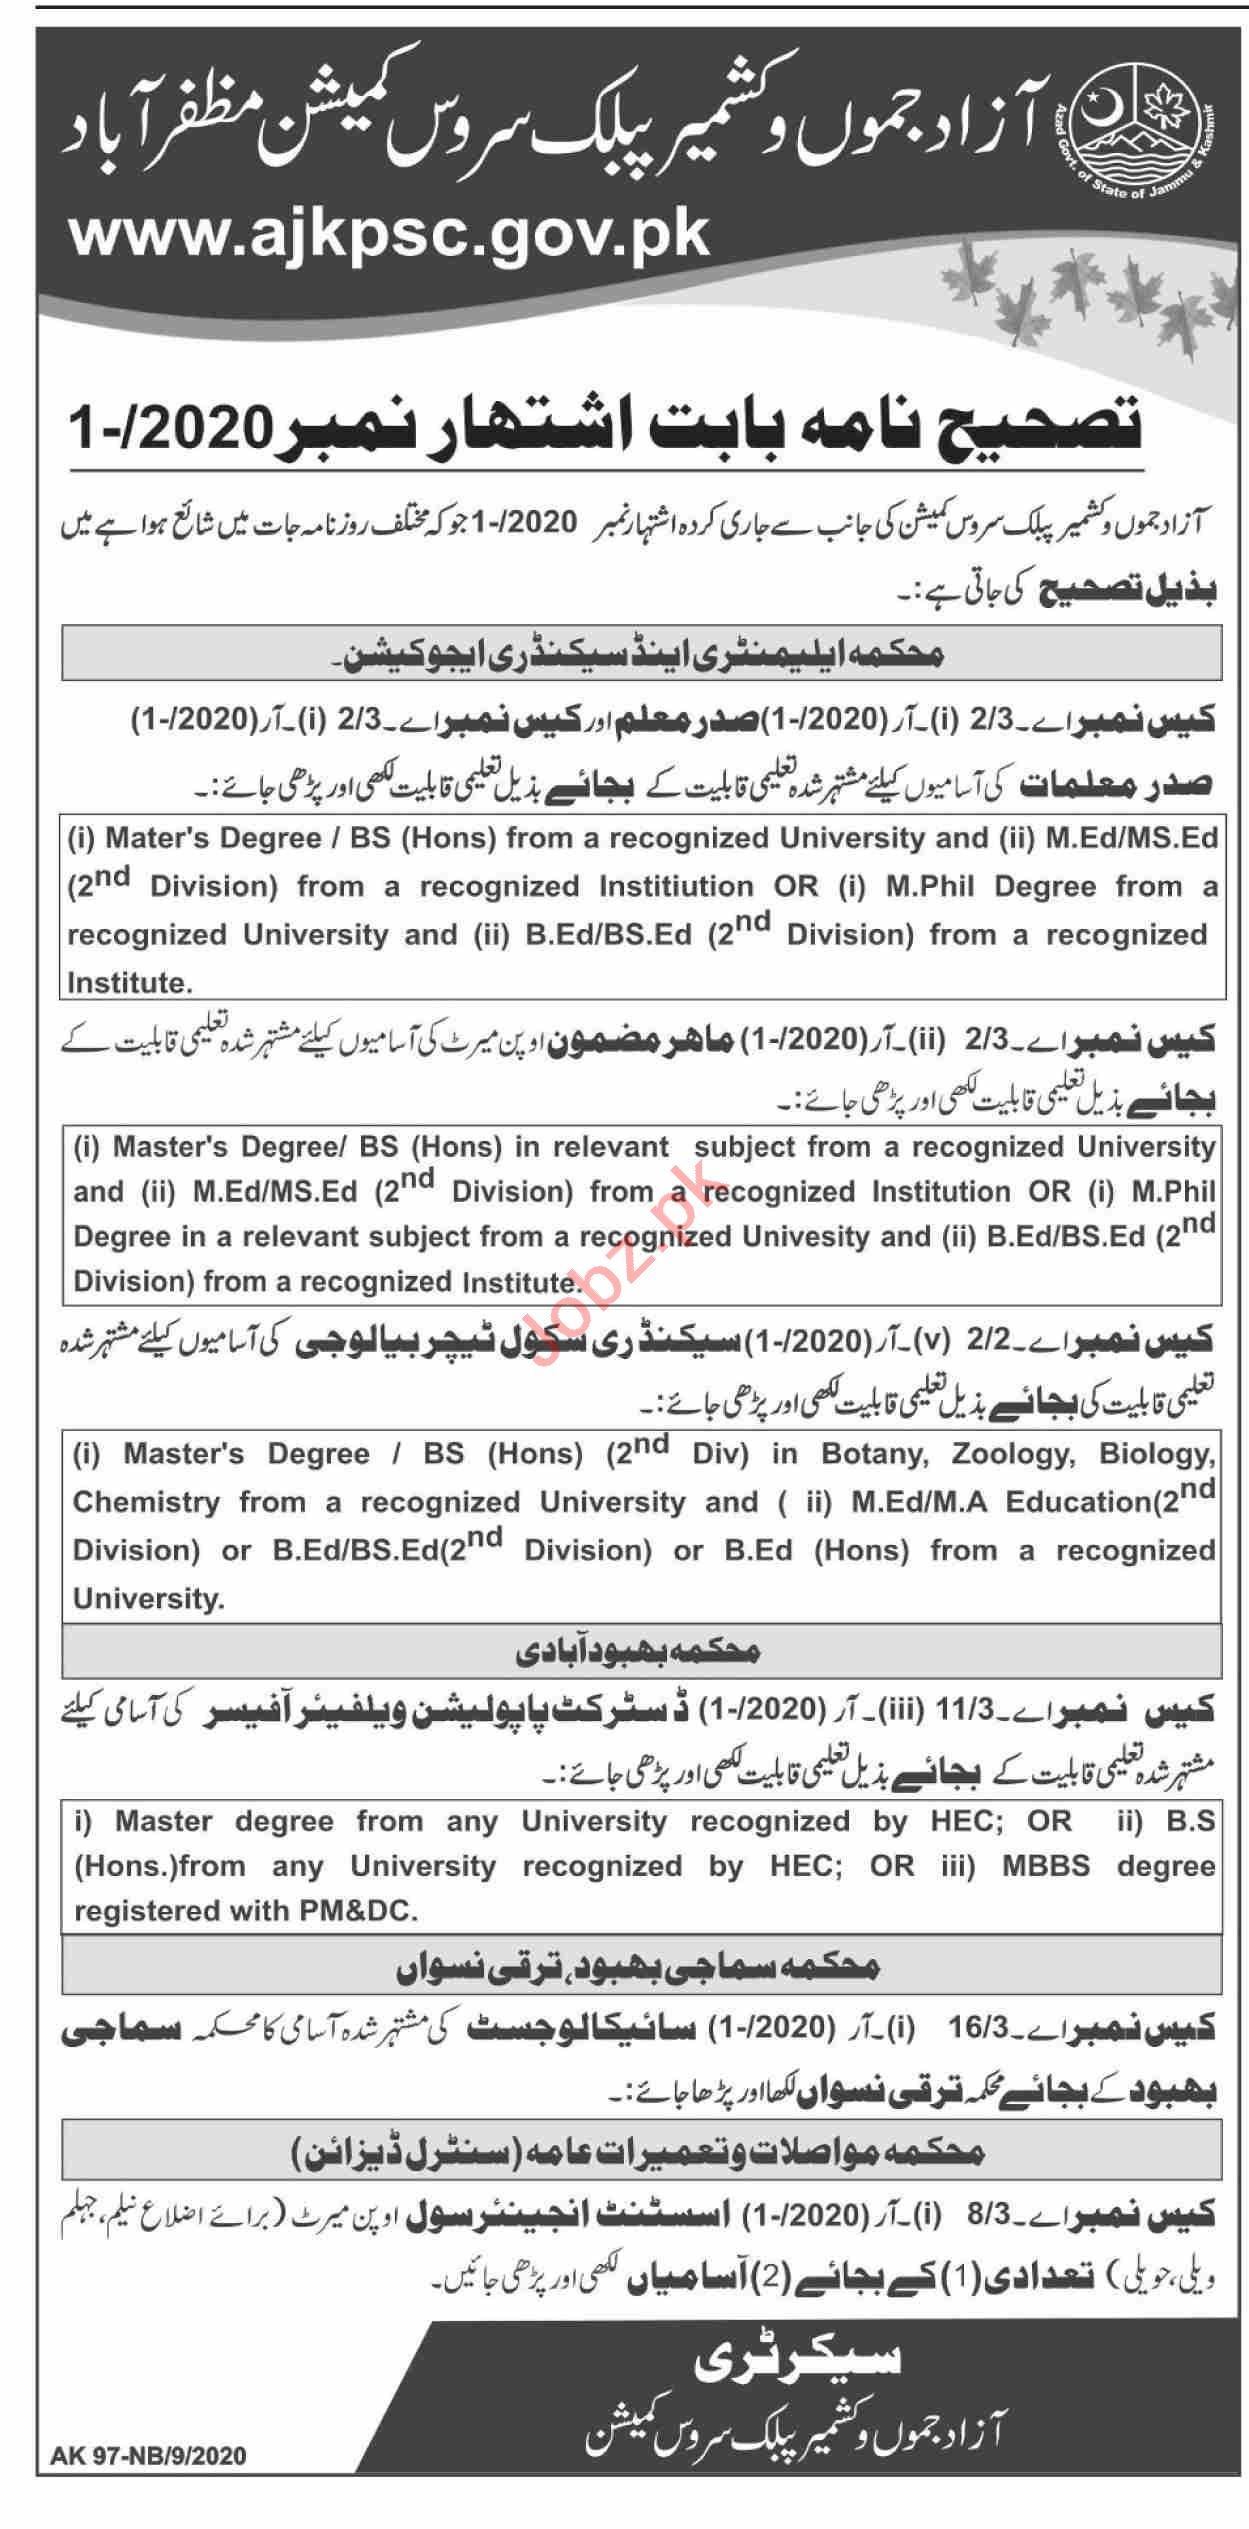 Elementary & Secondary Education AJKPSC Jobs 2020